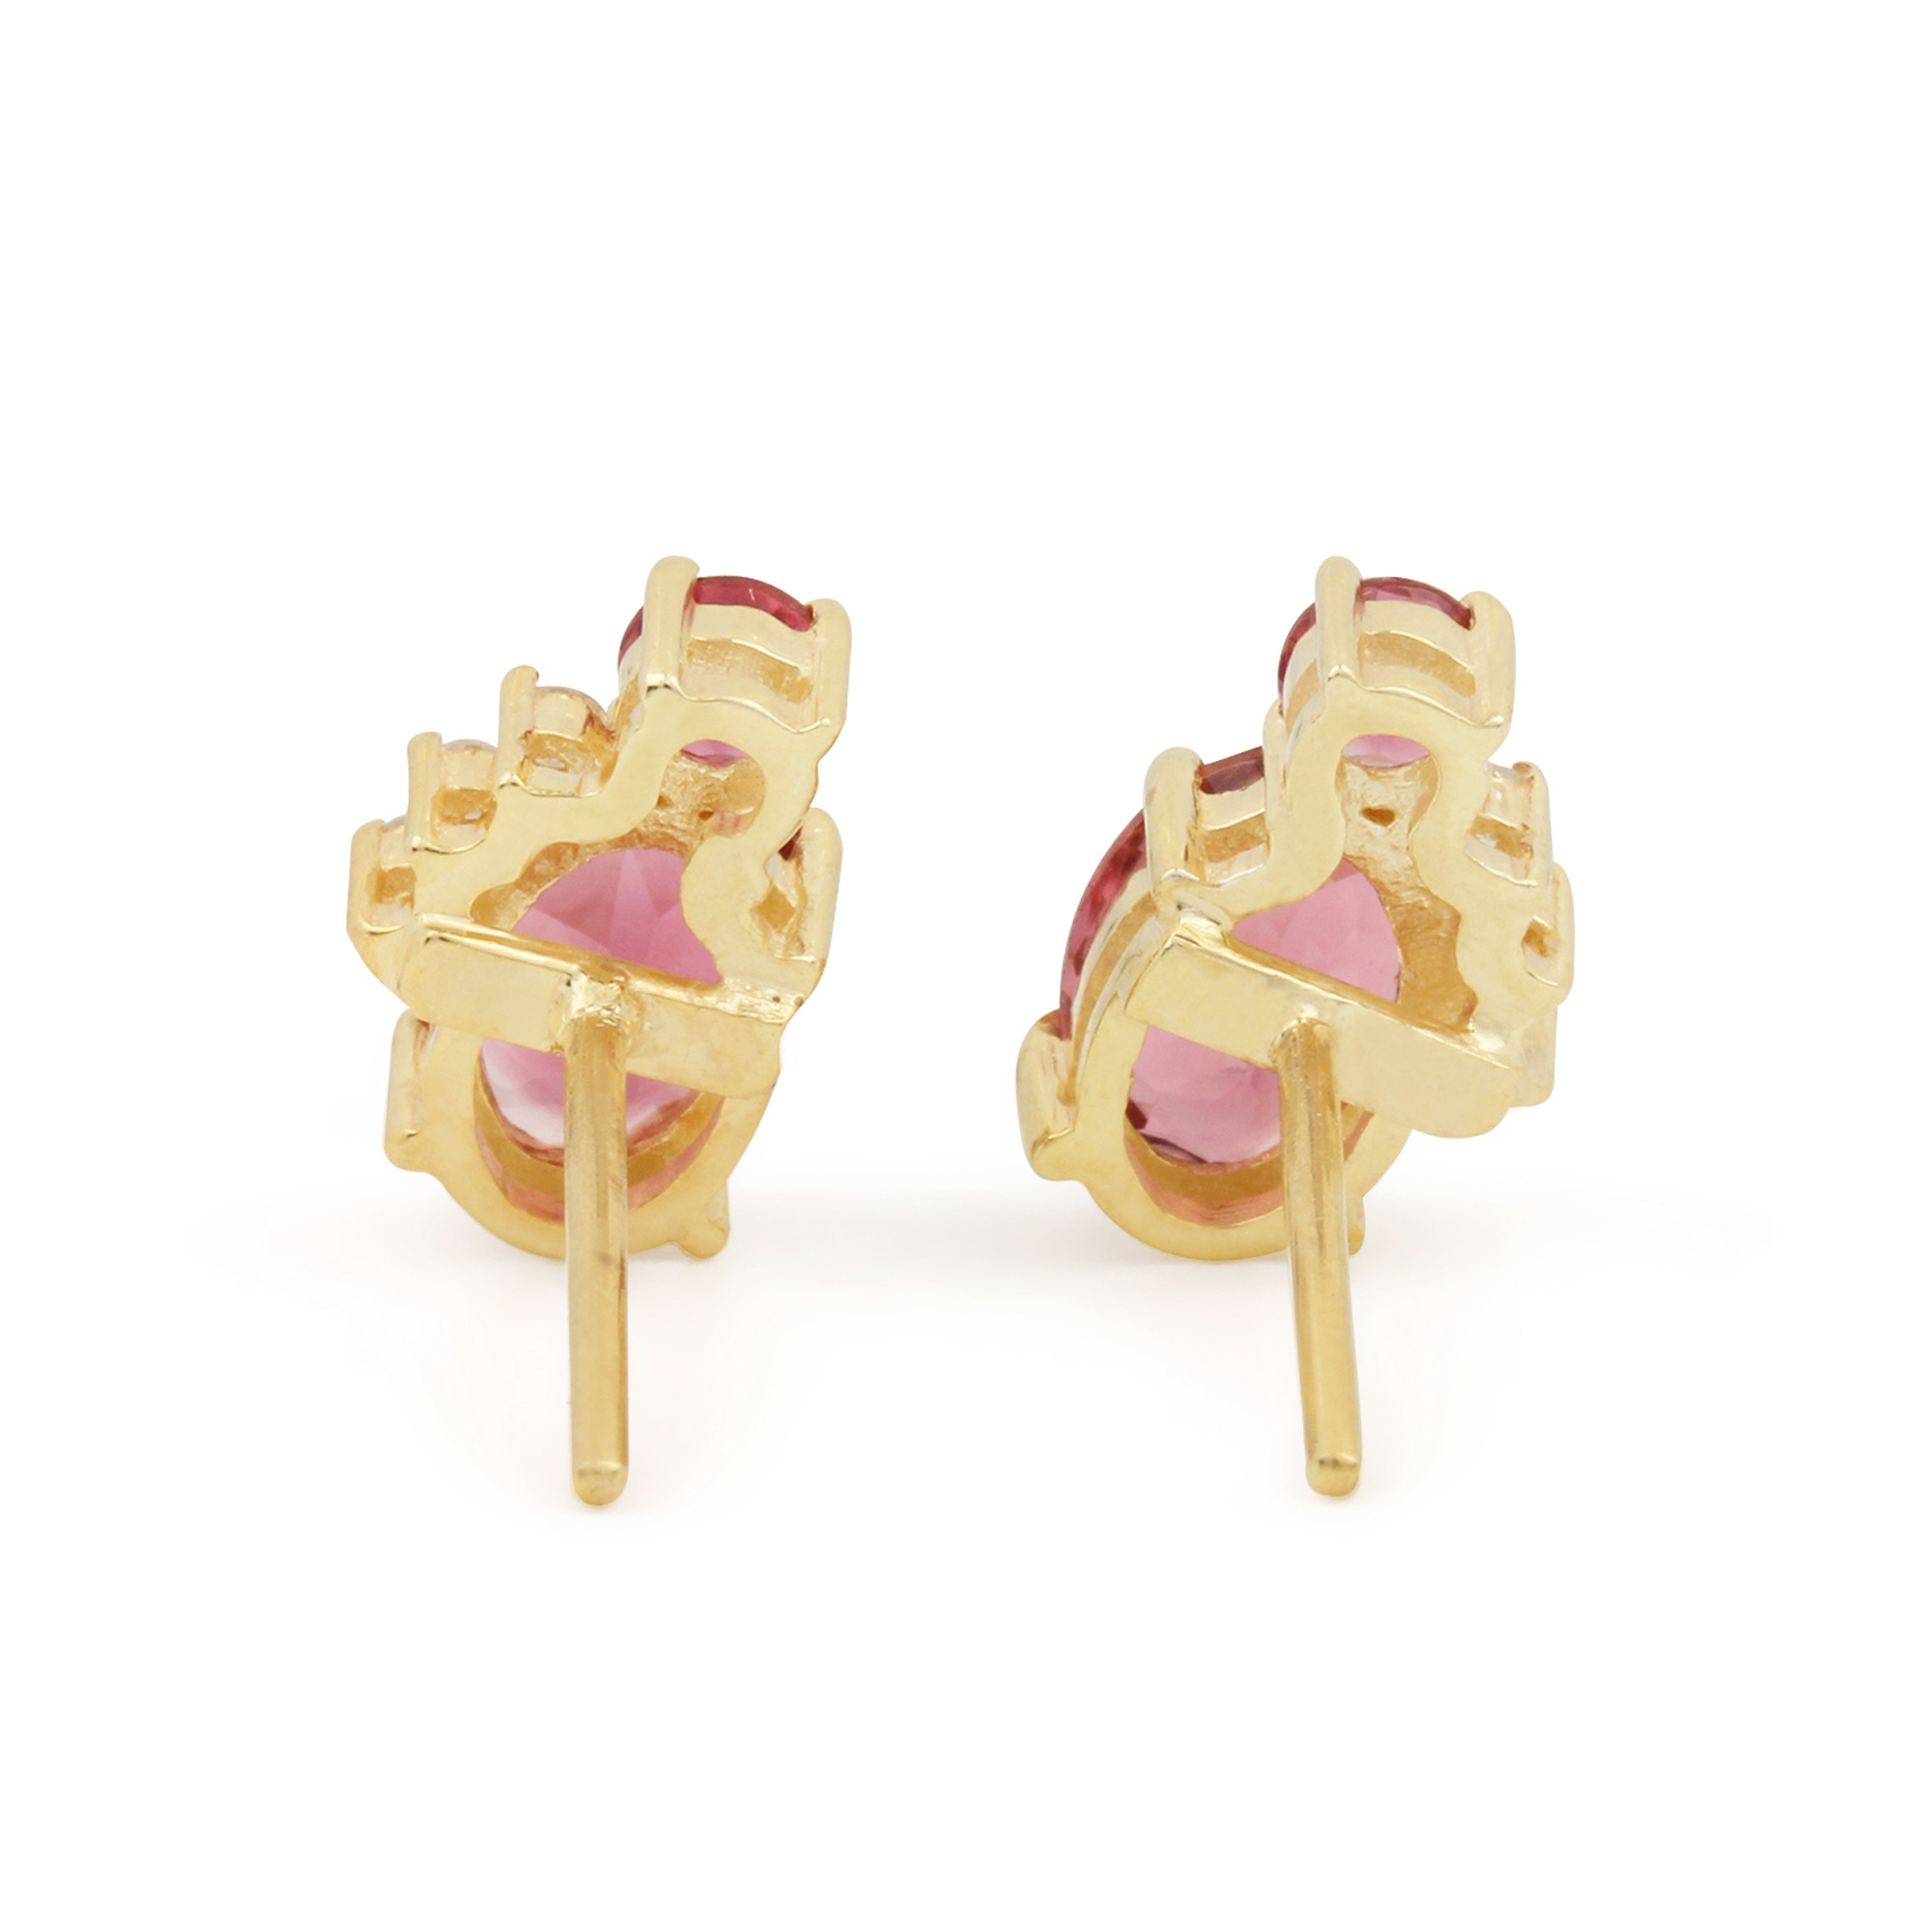 14k Solid Gold Stud Earrings Adorned With Diamond & Pink Tourmaline Gemstone